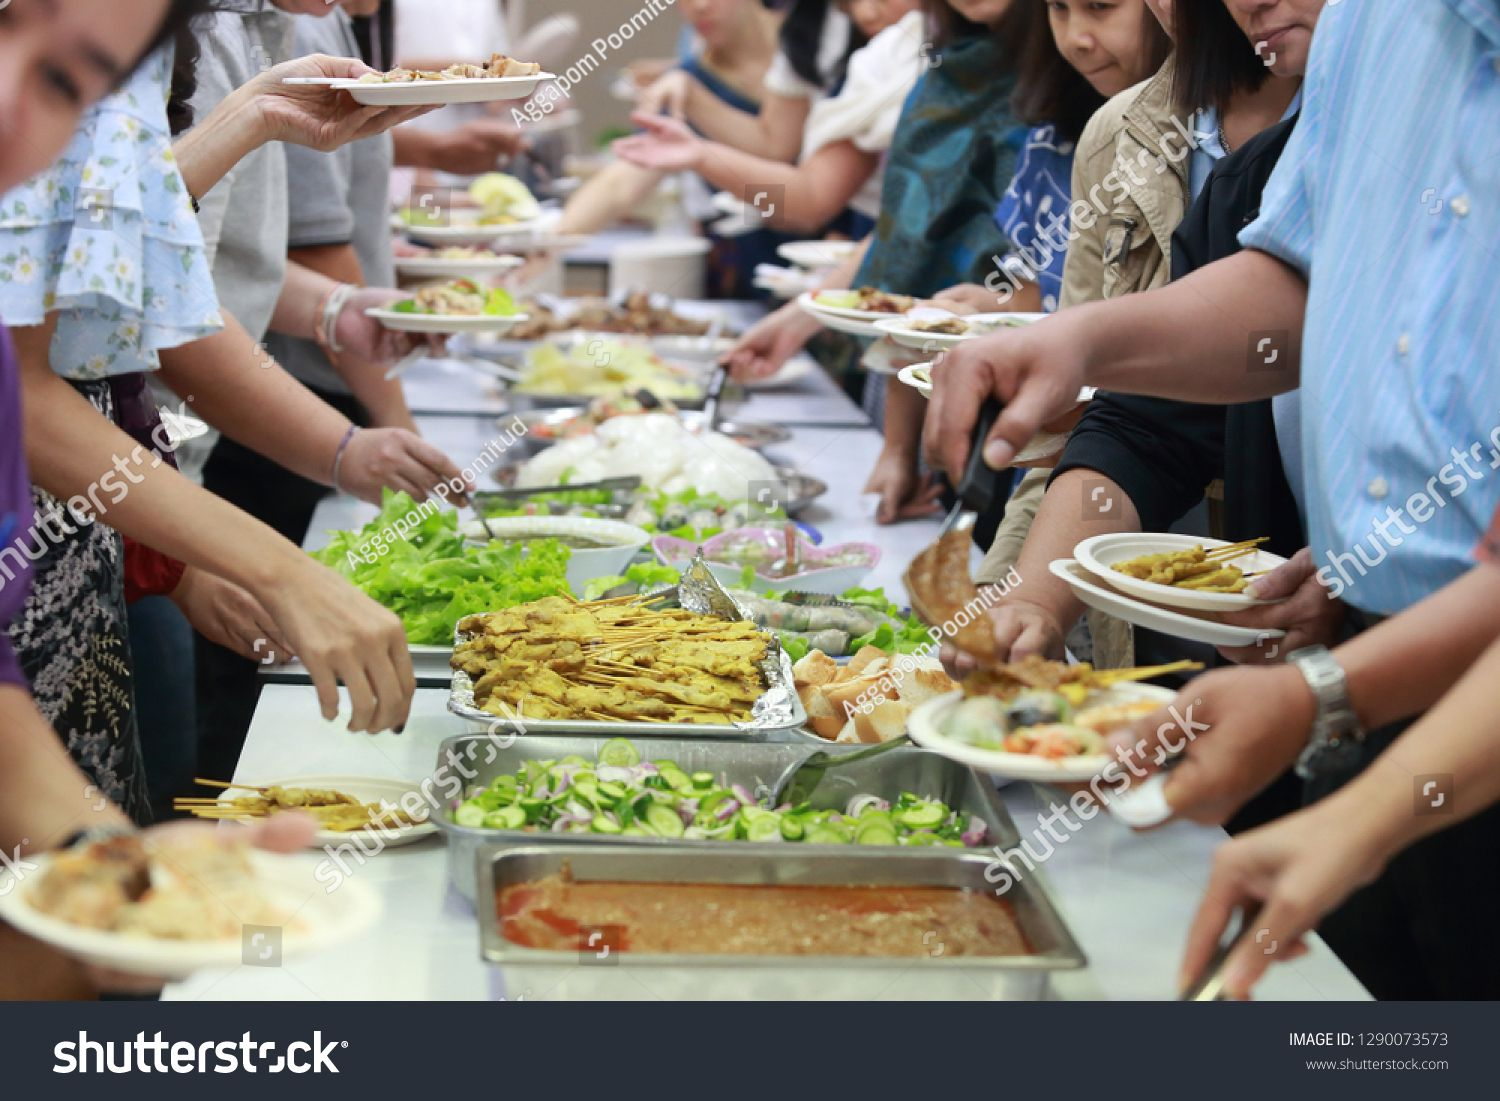 The People Are Enjoy The Buffet Food With The Asian Food With